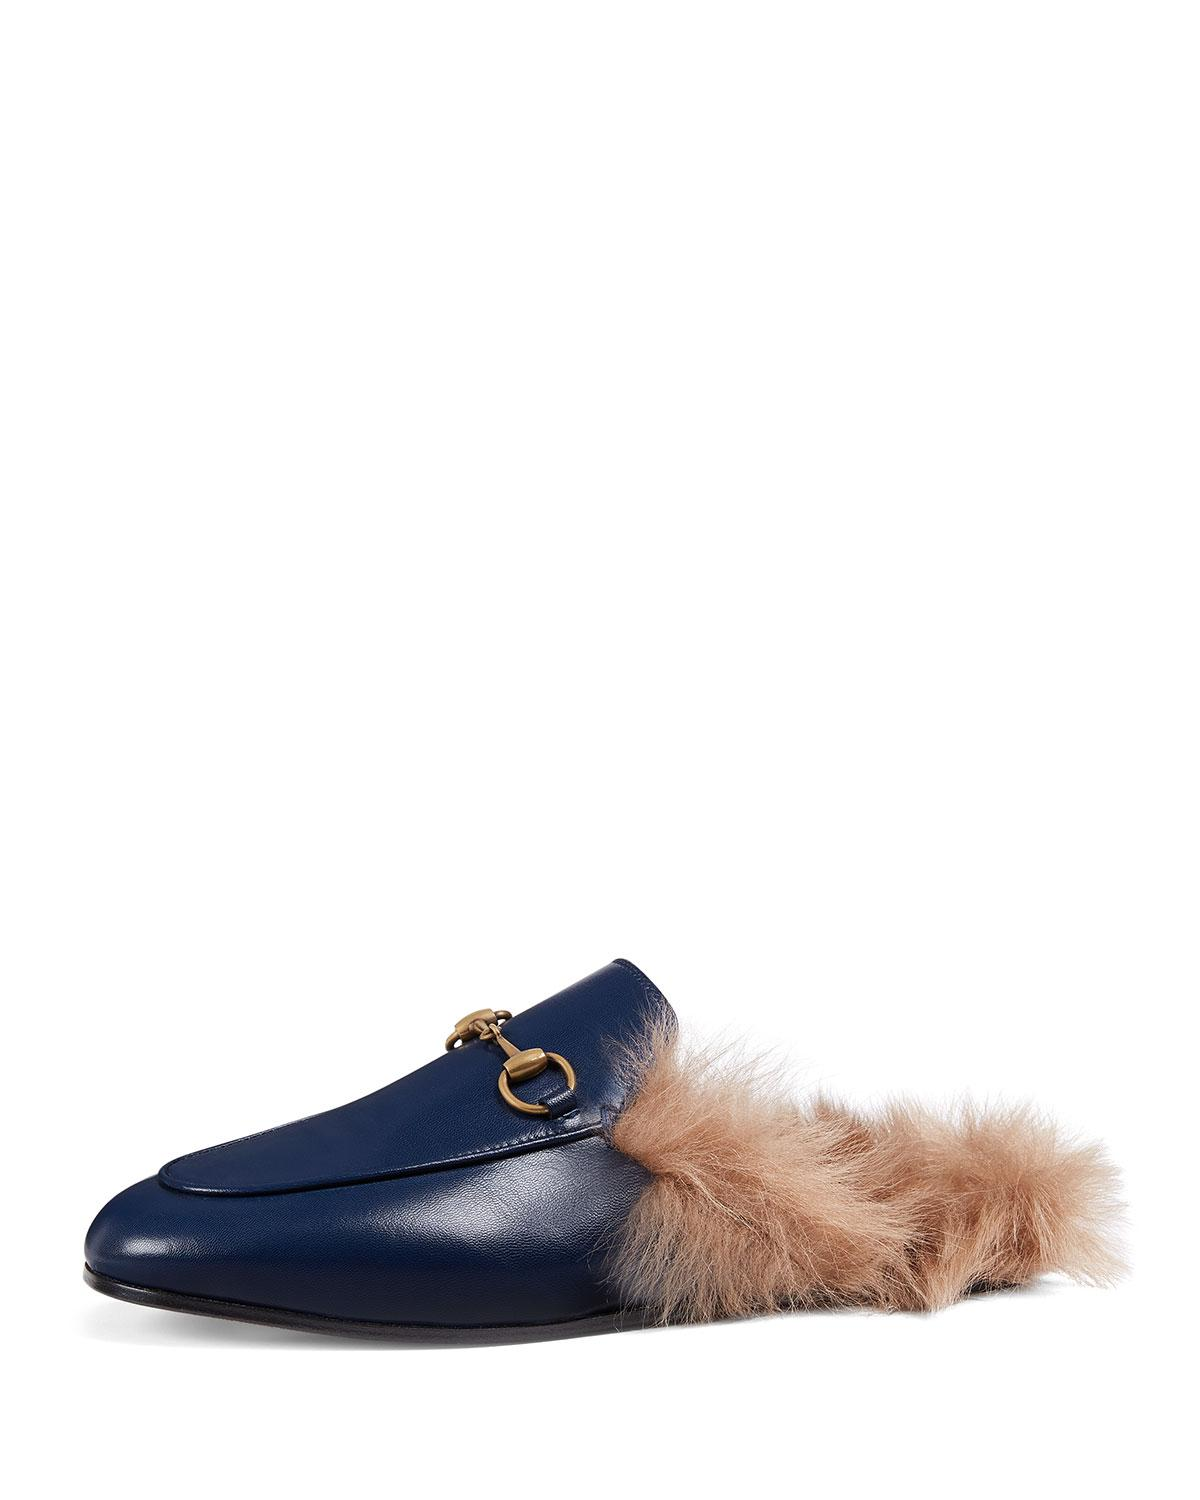 467352cdb2a Lyst - Gucci Fur-lined Leather Mule Slippers in Blue